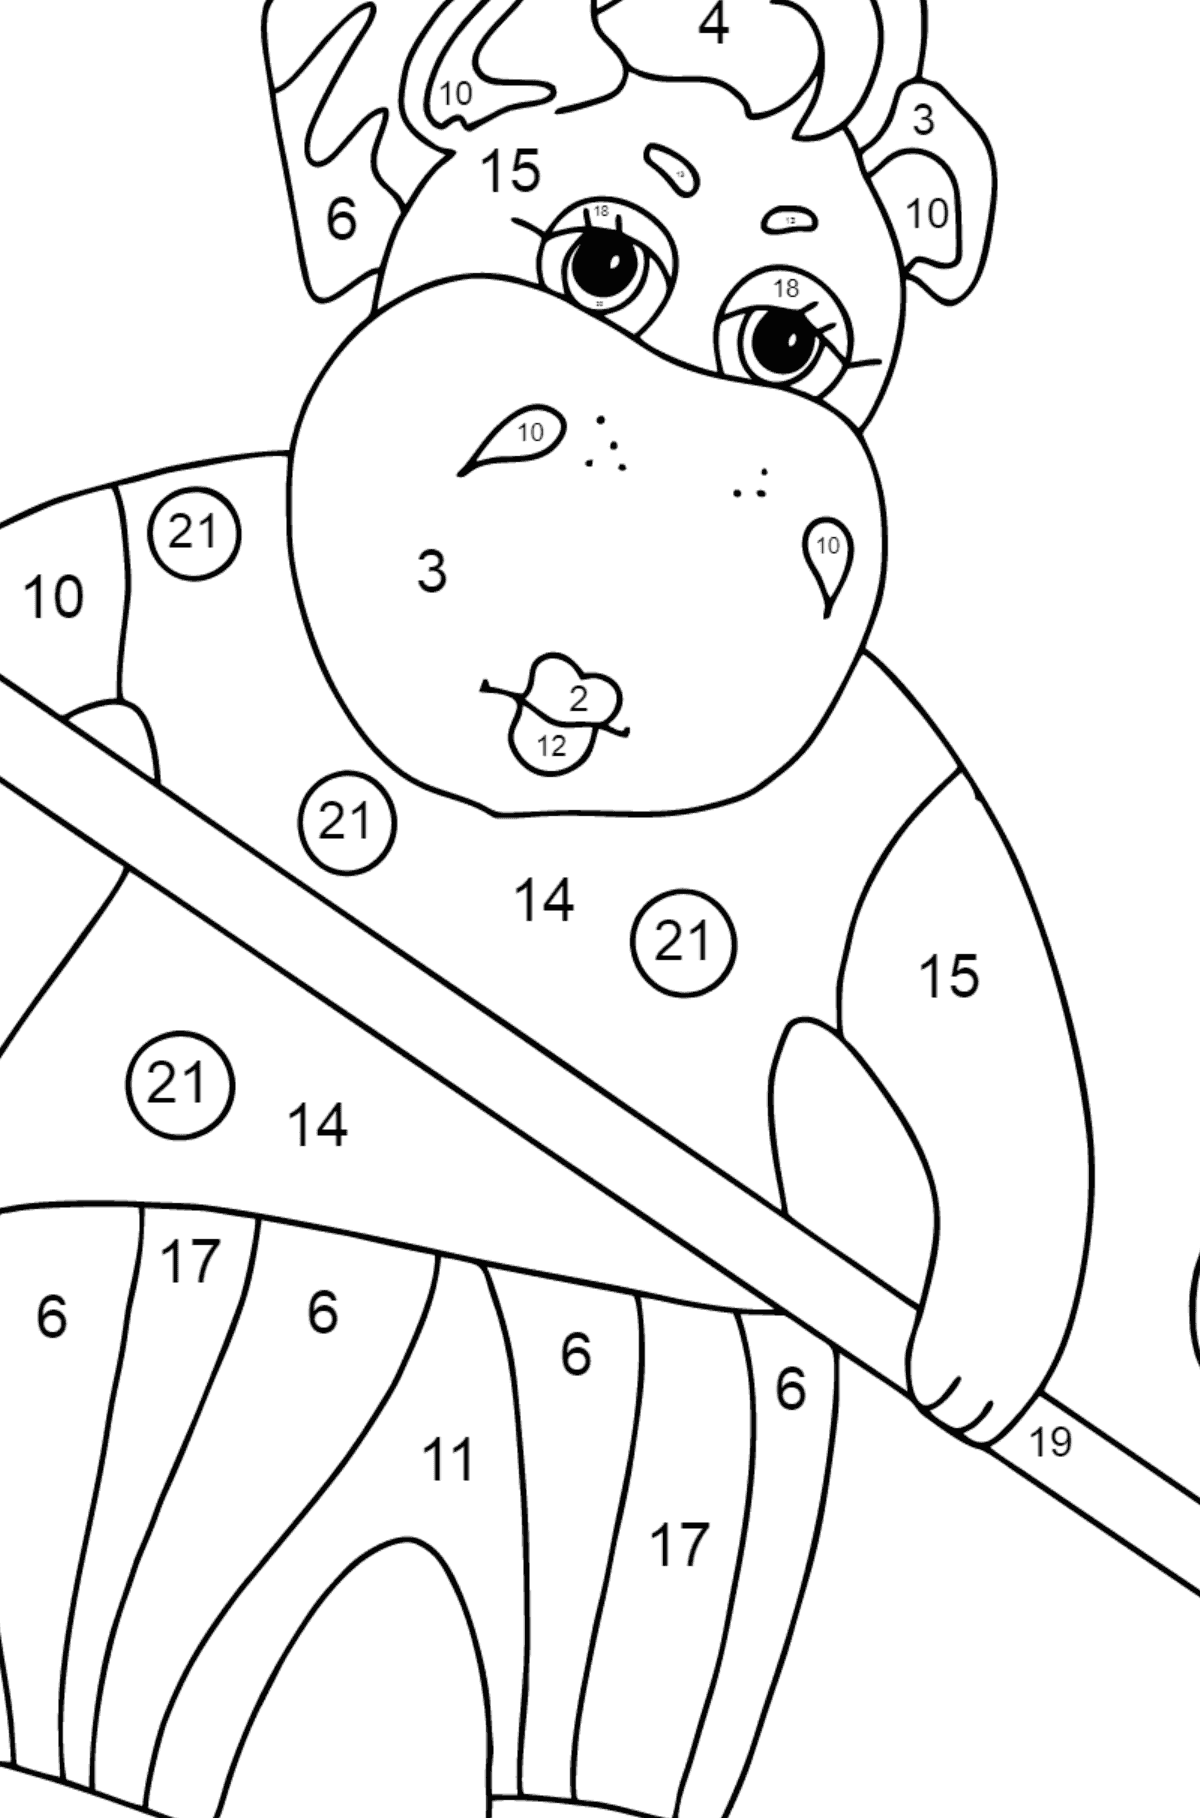 Coloring Page - A Hippo is Sweeping Autumn Leaves for Kids  - Color by Number